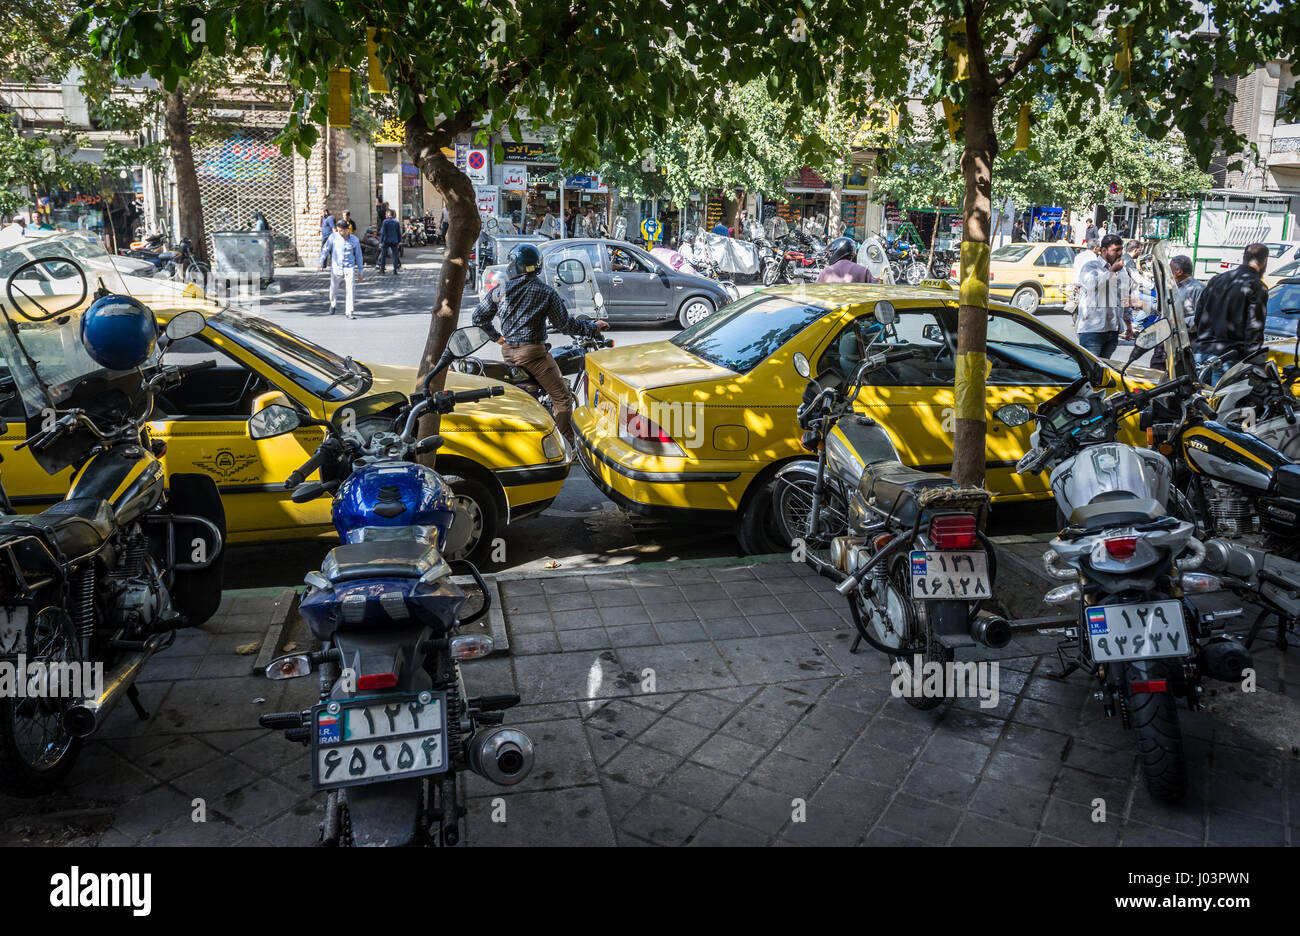 Taxi cabs and scooters on Khayyam Street in Tehran city, capital of Iran and Tehran Province - Stock Image